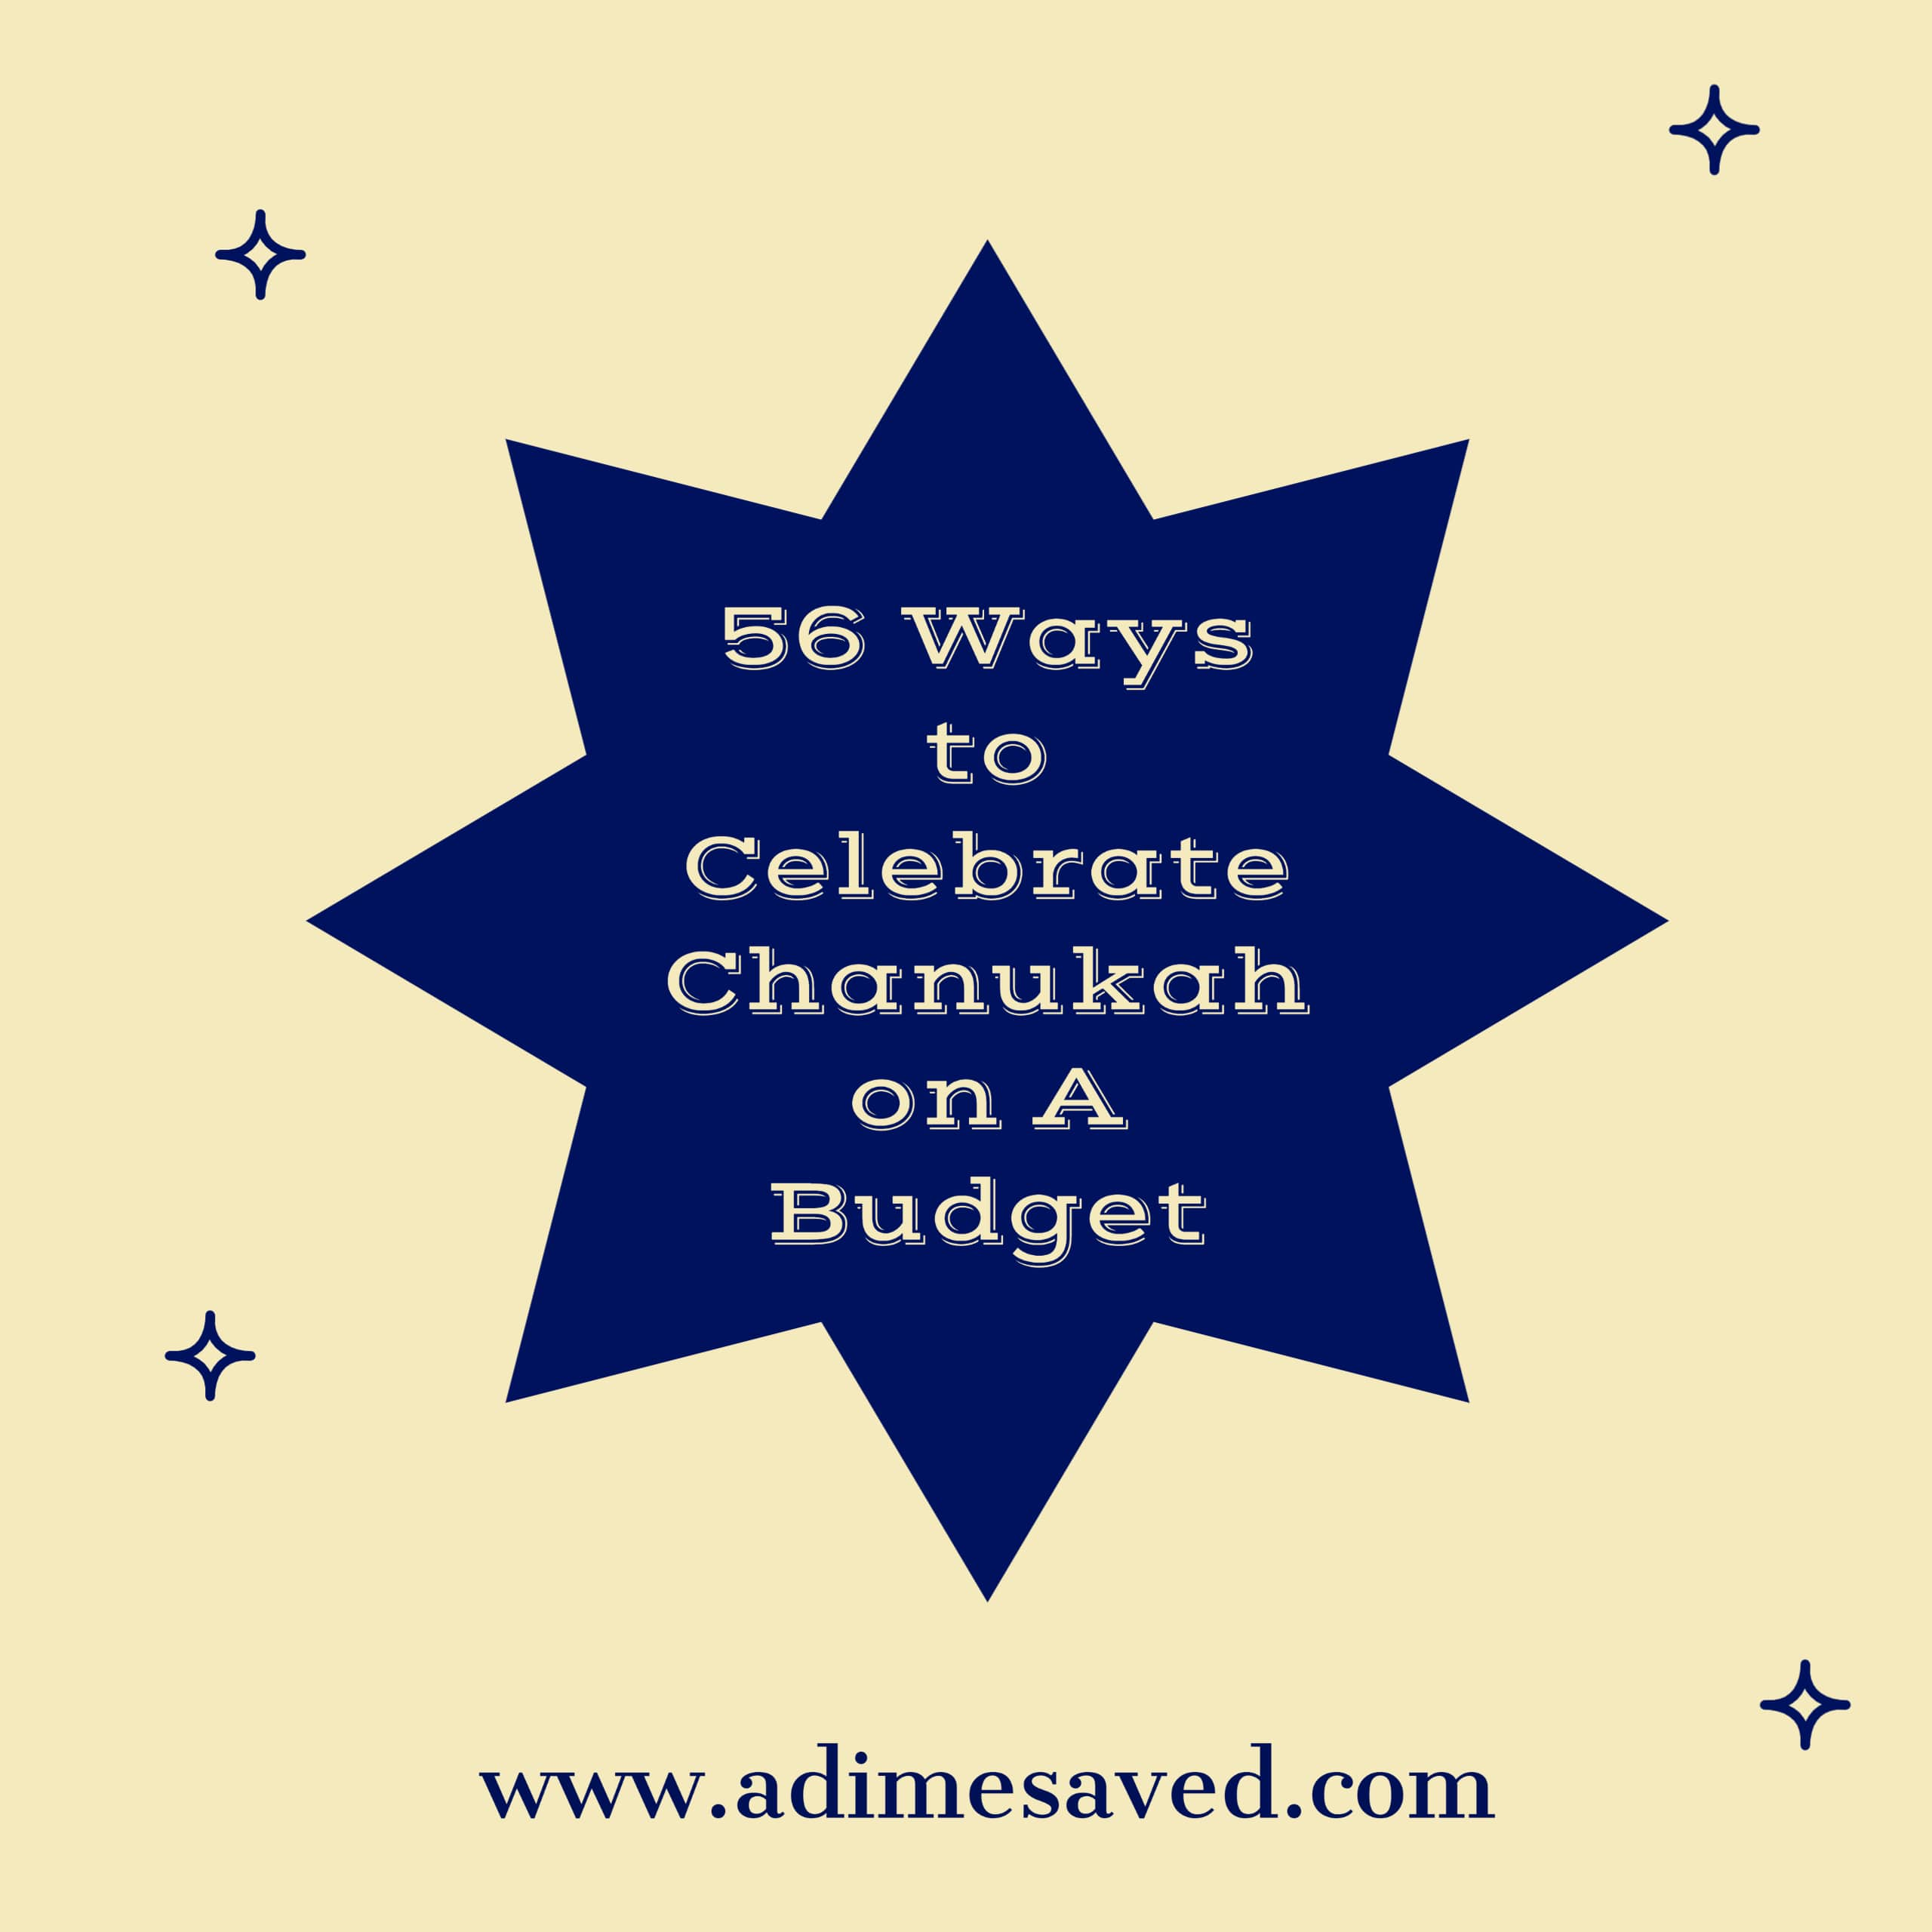 Chanukah on a Budget